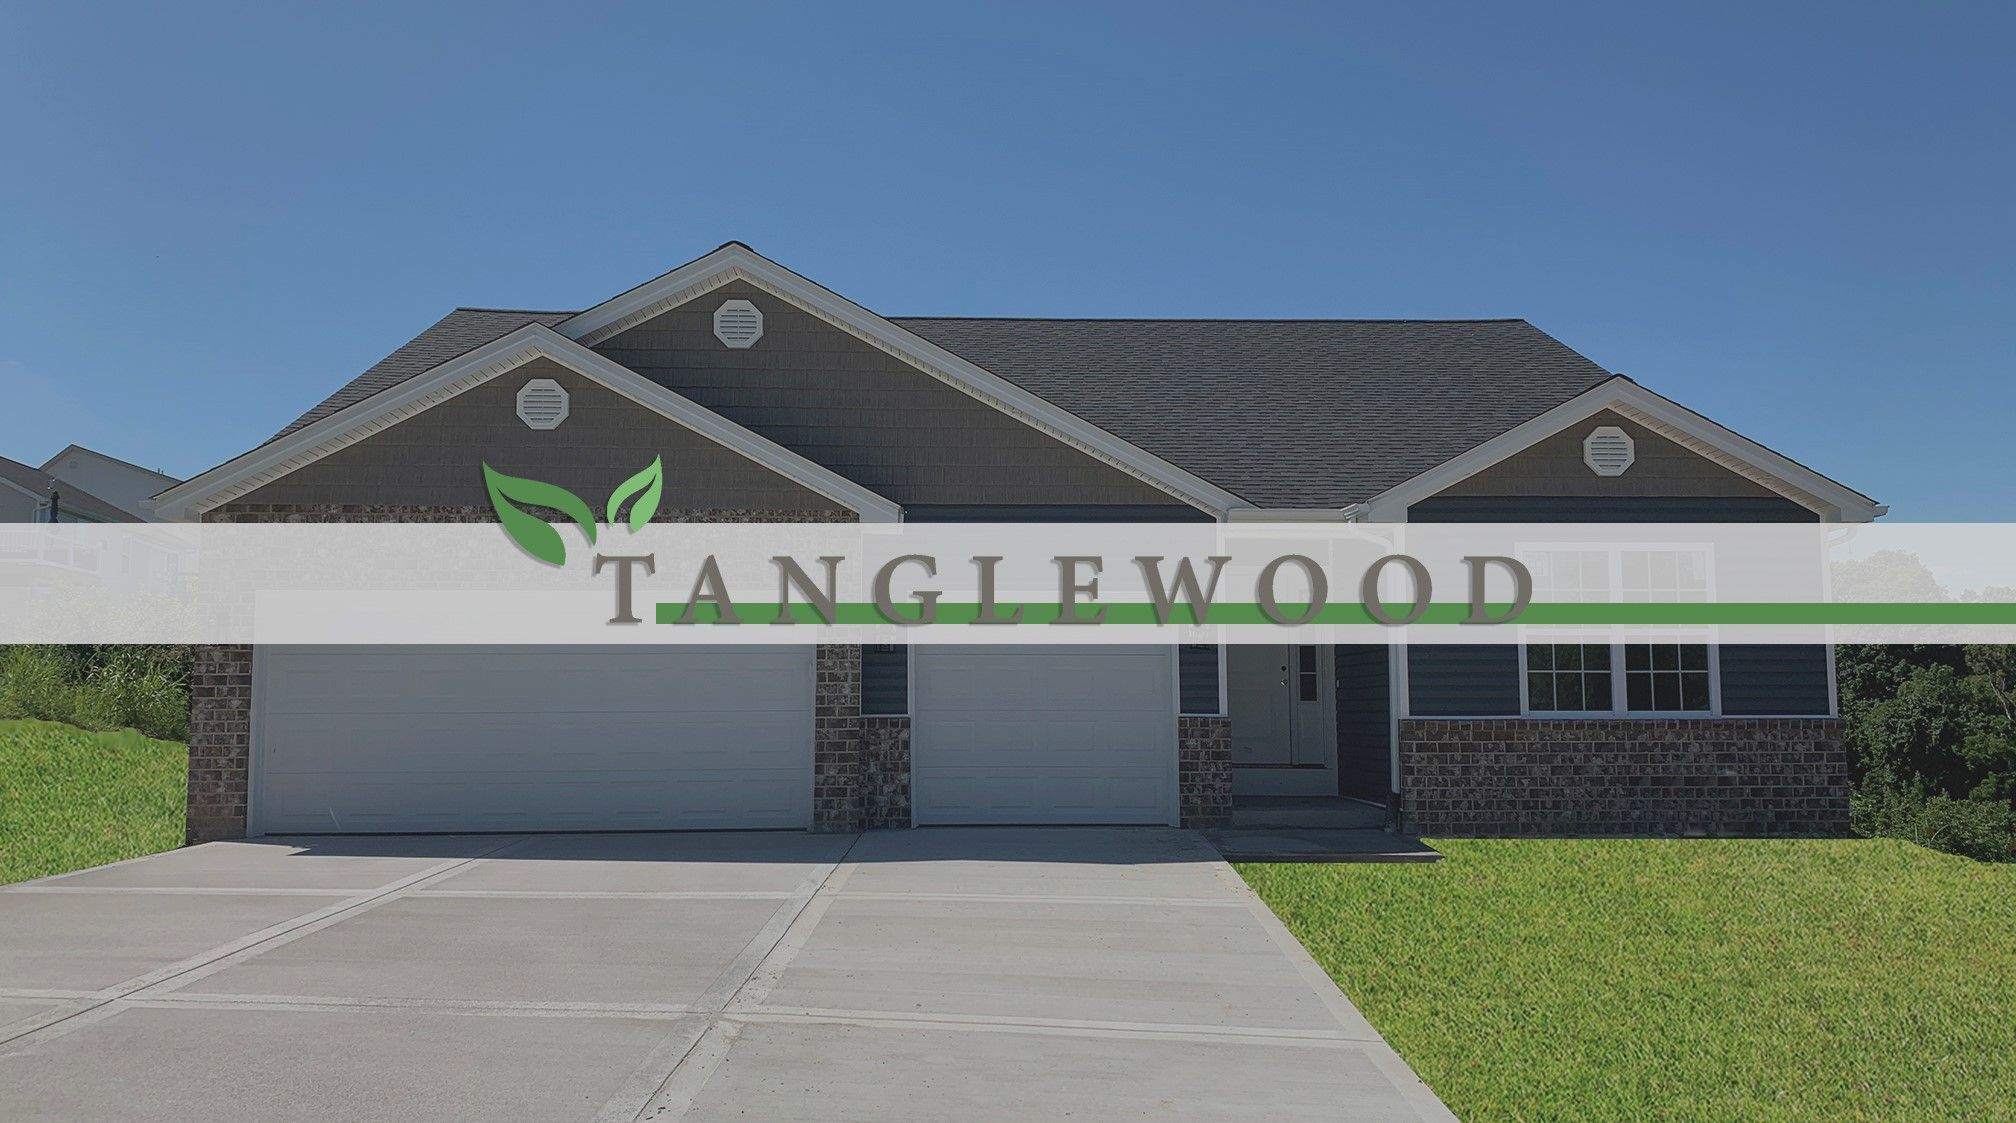 'Tanglewood' by C.A. Jones, Inc. in St. Louis